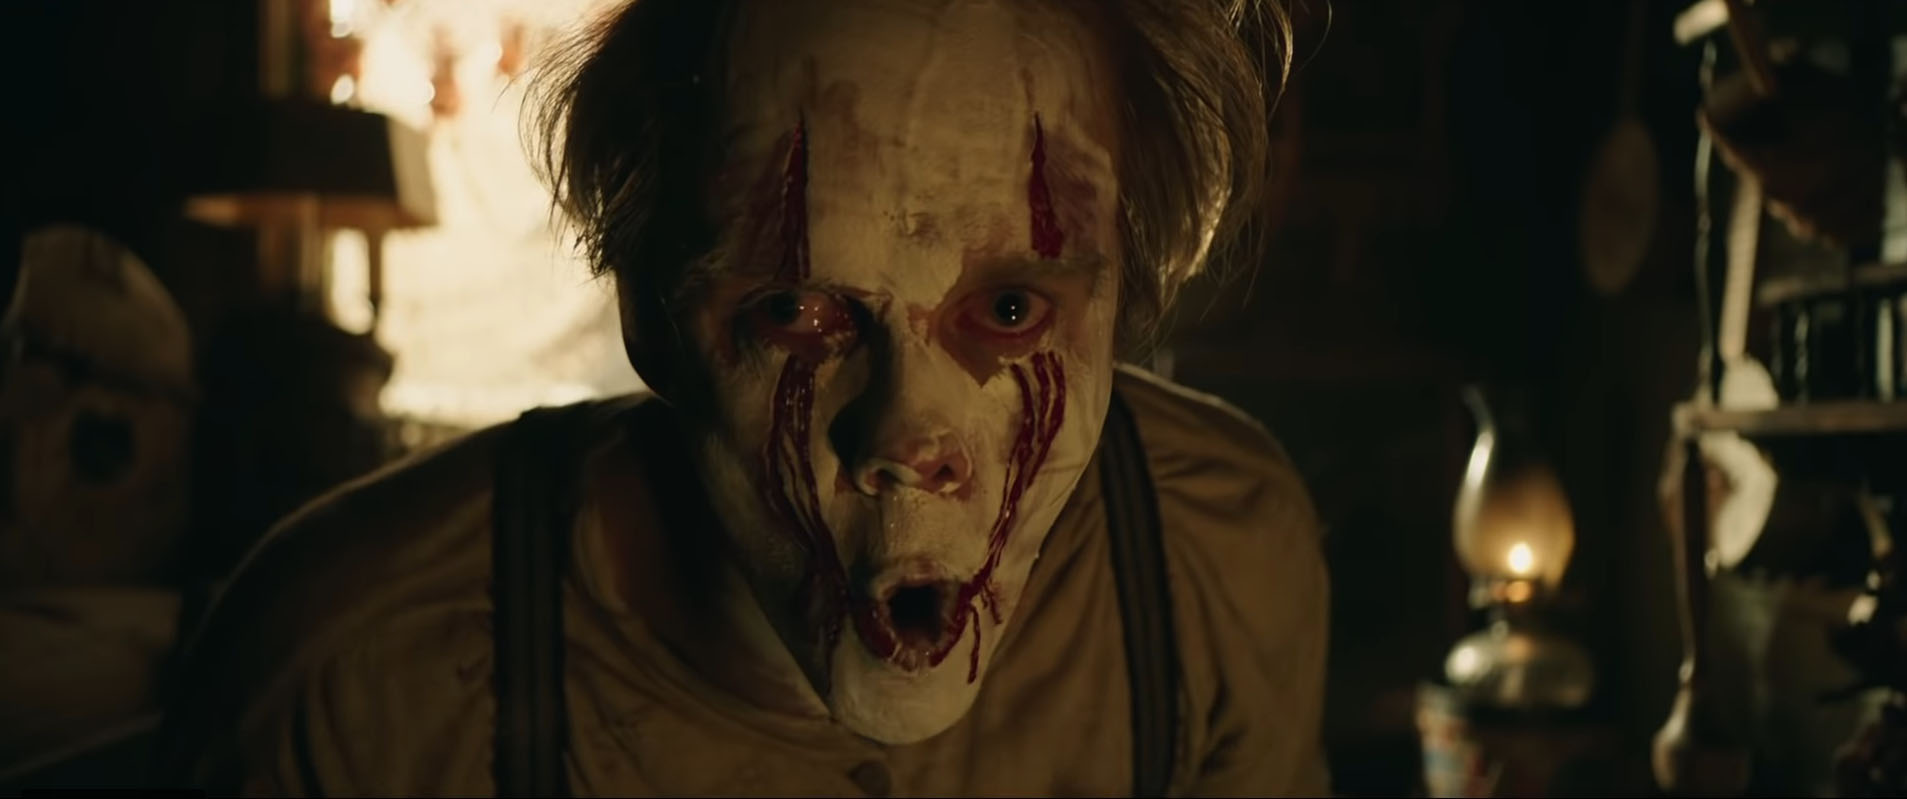 ItChapter21